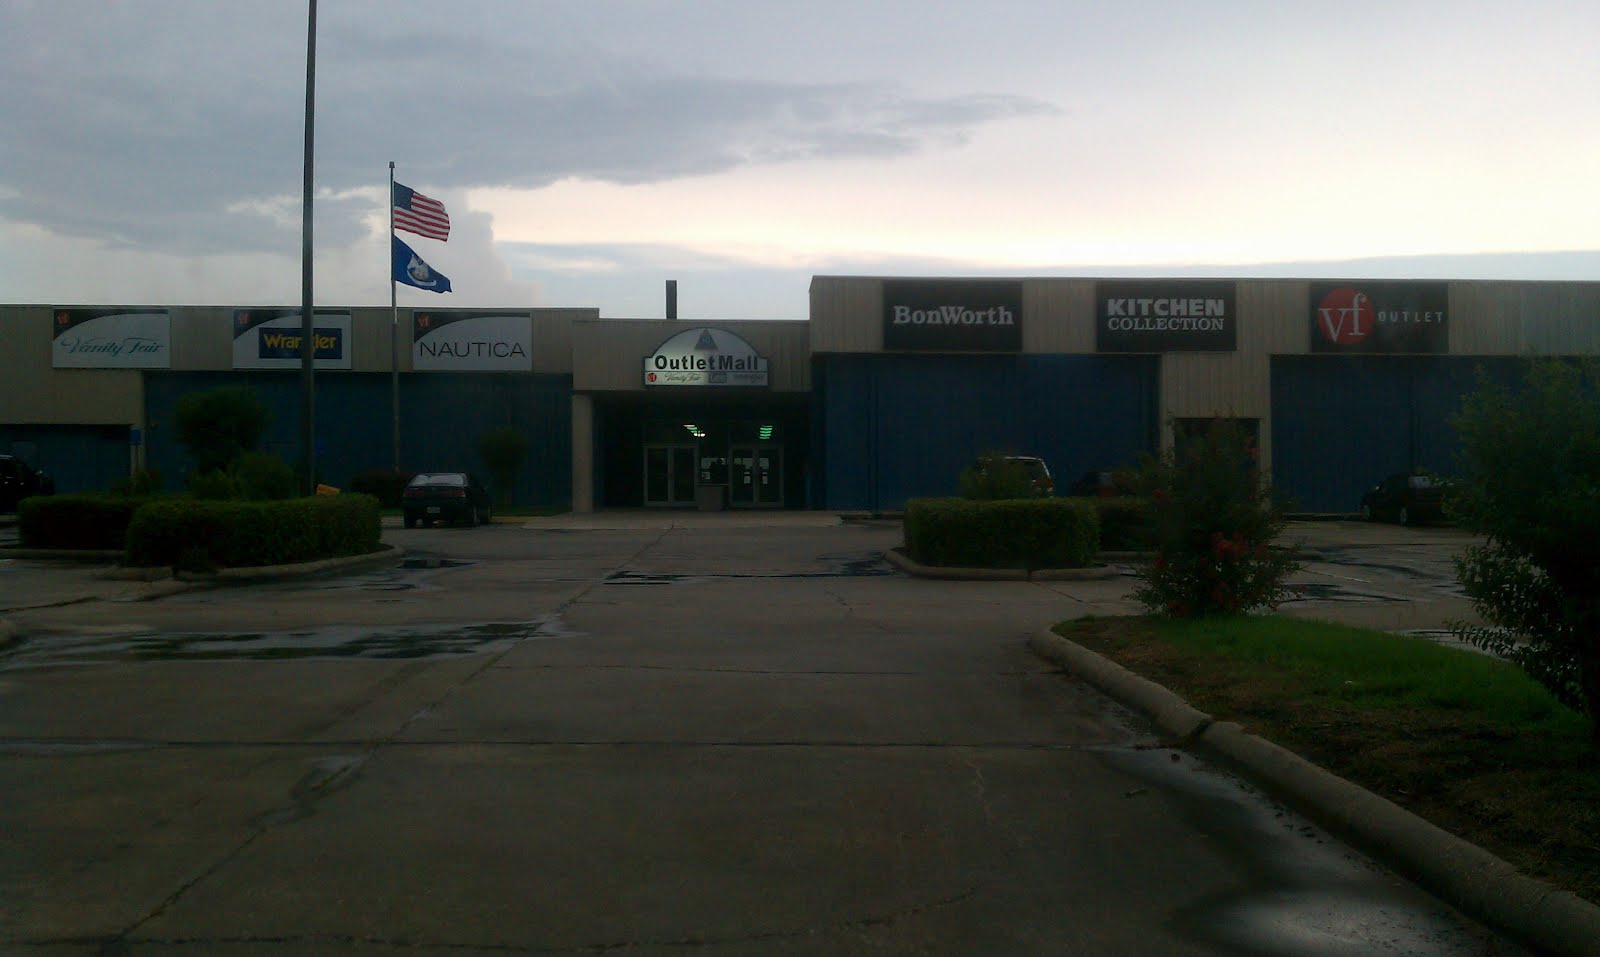 louisiana and texas southern malls and retail i 10 outlet mall this is the entrance to the closed off portion of the mall